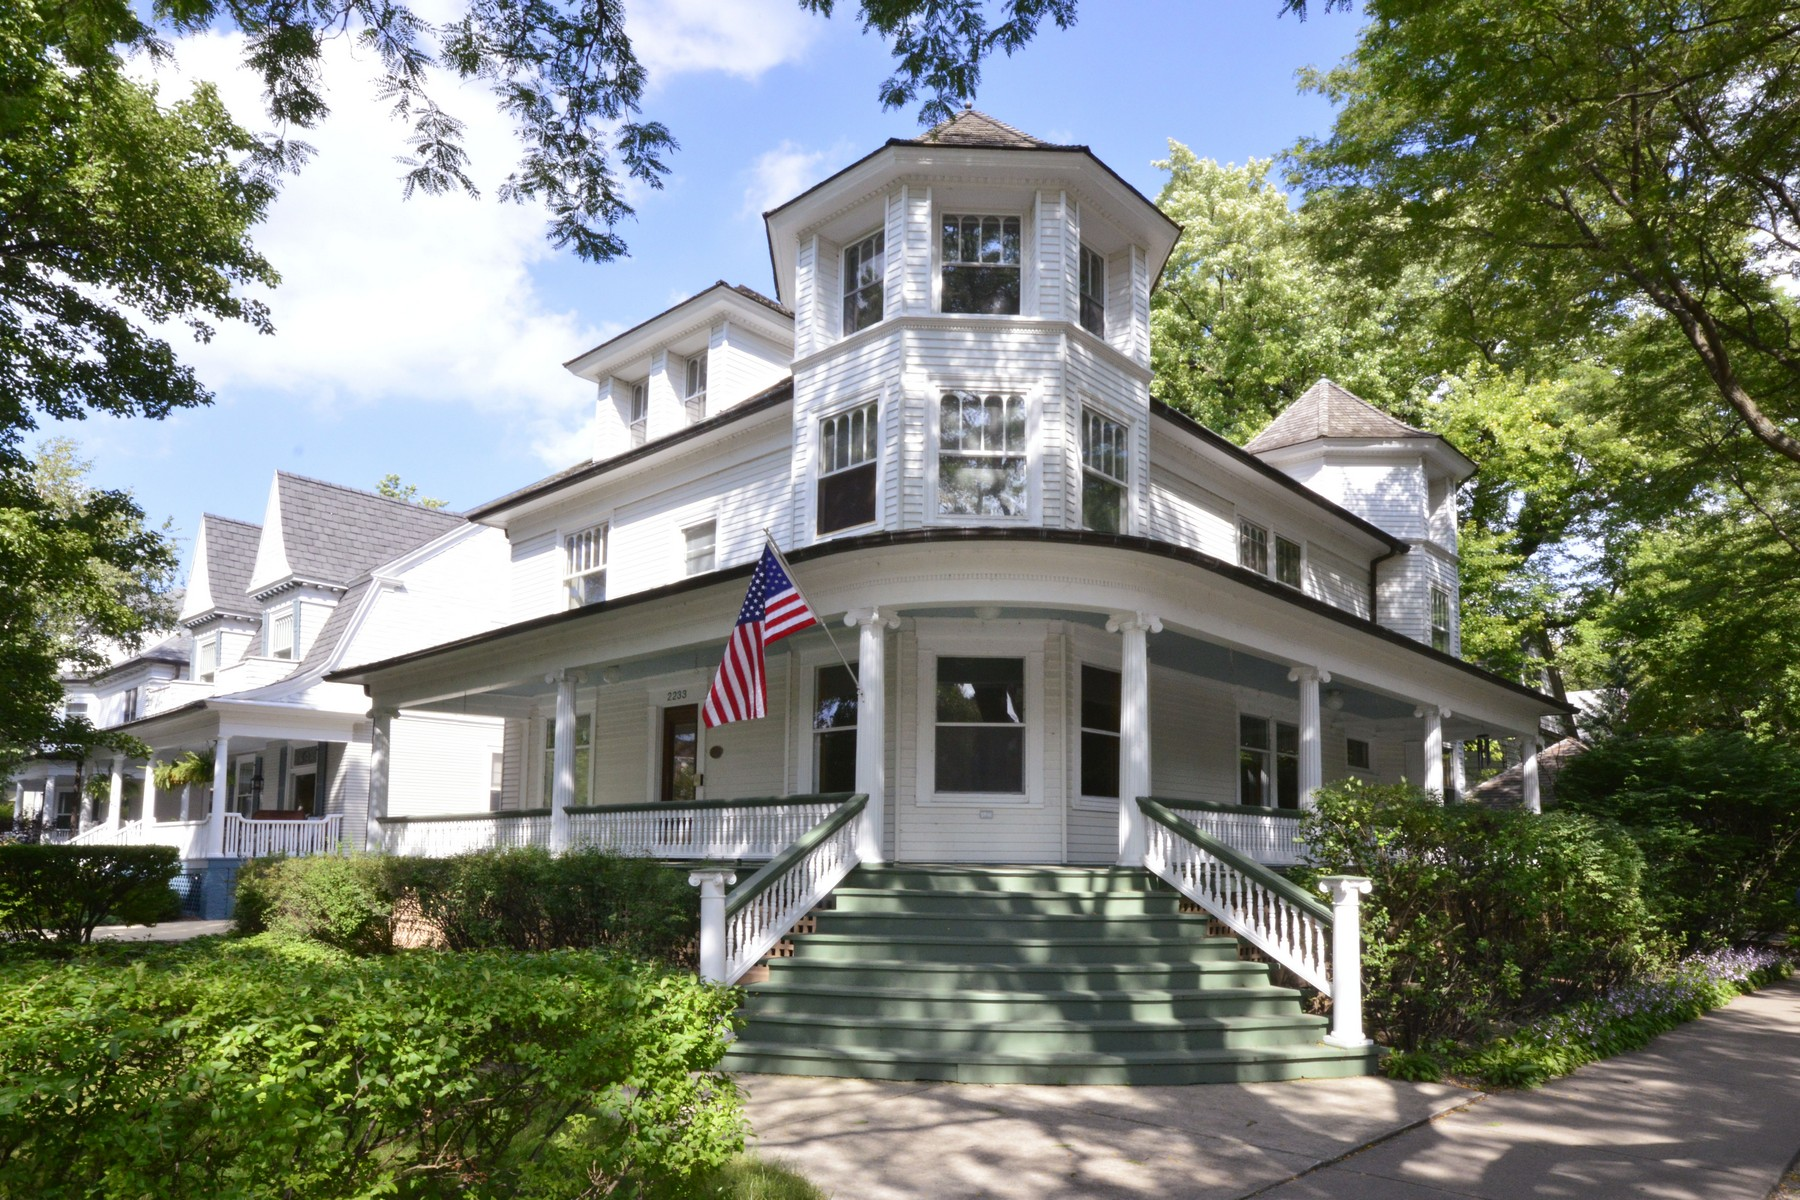 Single Family Home for Sale at Magnificent Location And Presence 2233 Sherman Avenue Evanston, Illinois 60201 United States